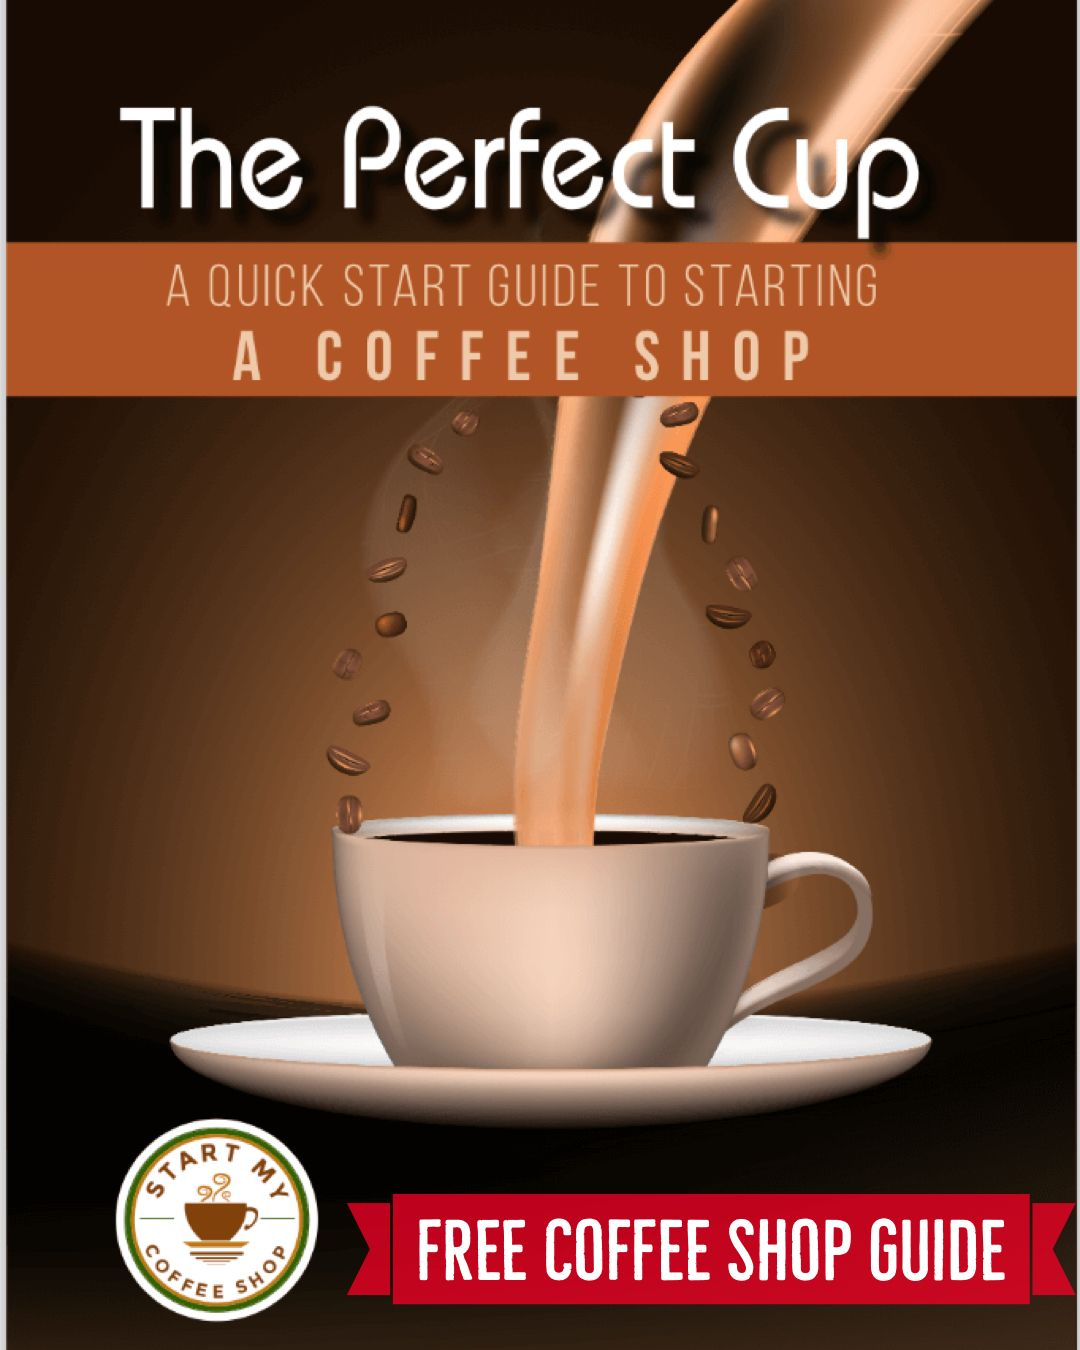 Have you considered starting a coffee shop? Download our